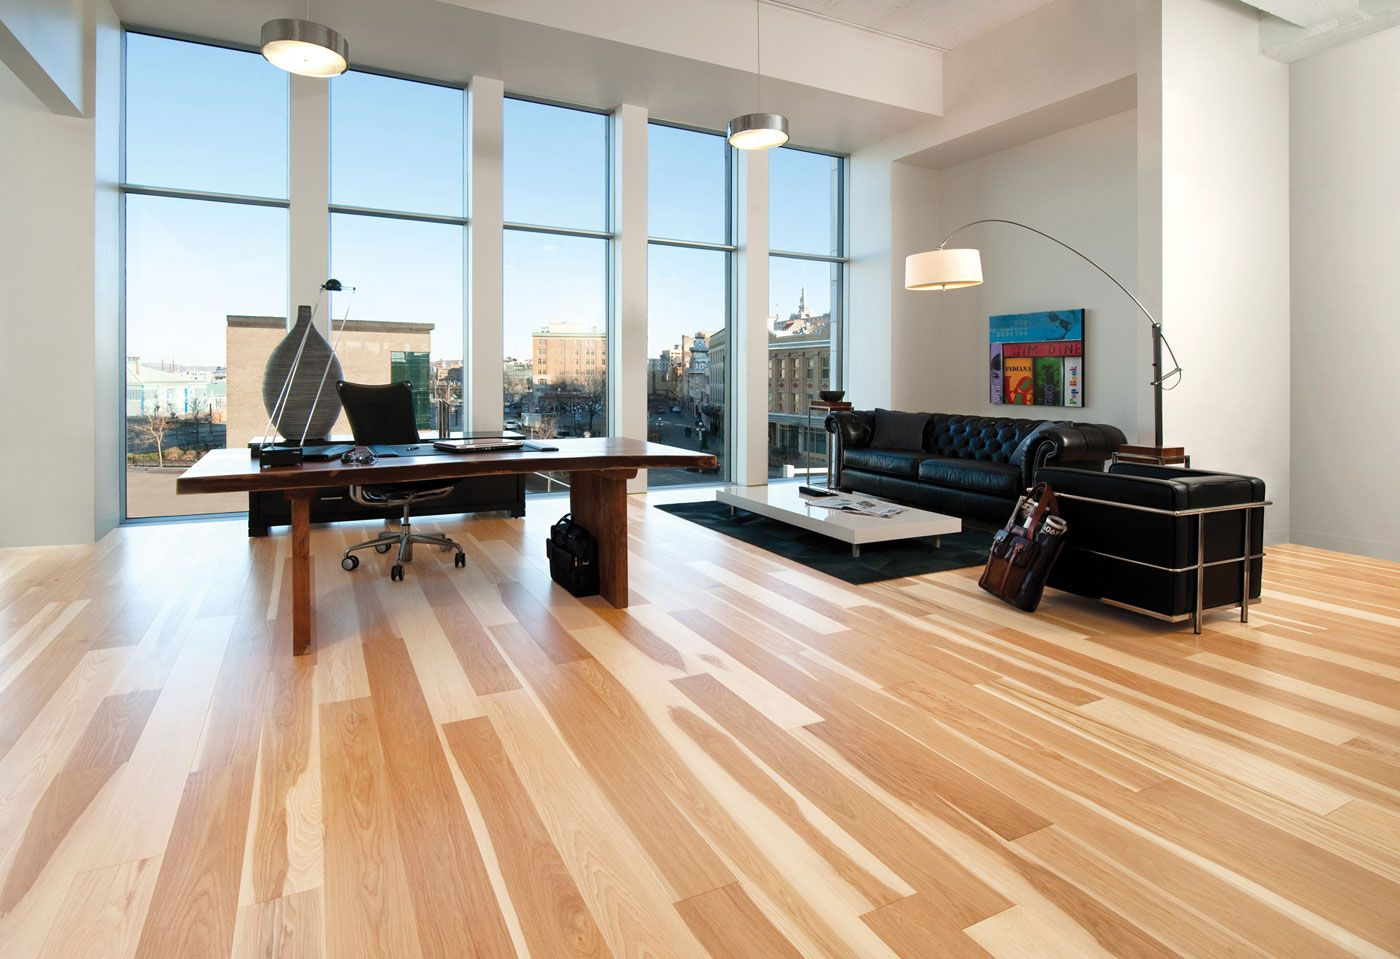 1000+ images about Hardwood Floors on Pinterest - ^